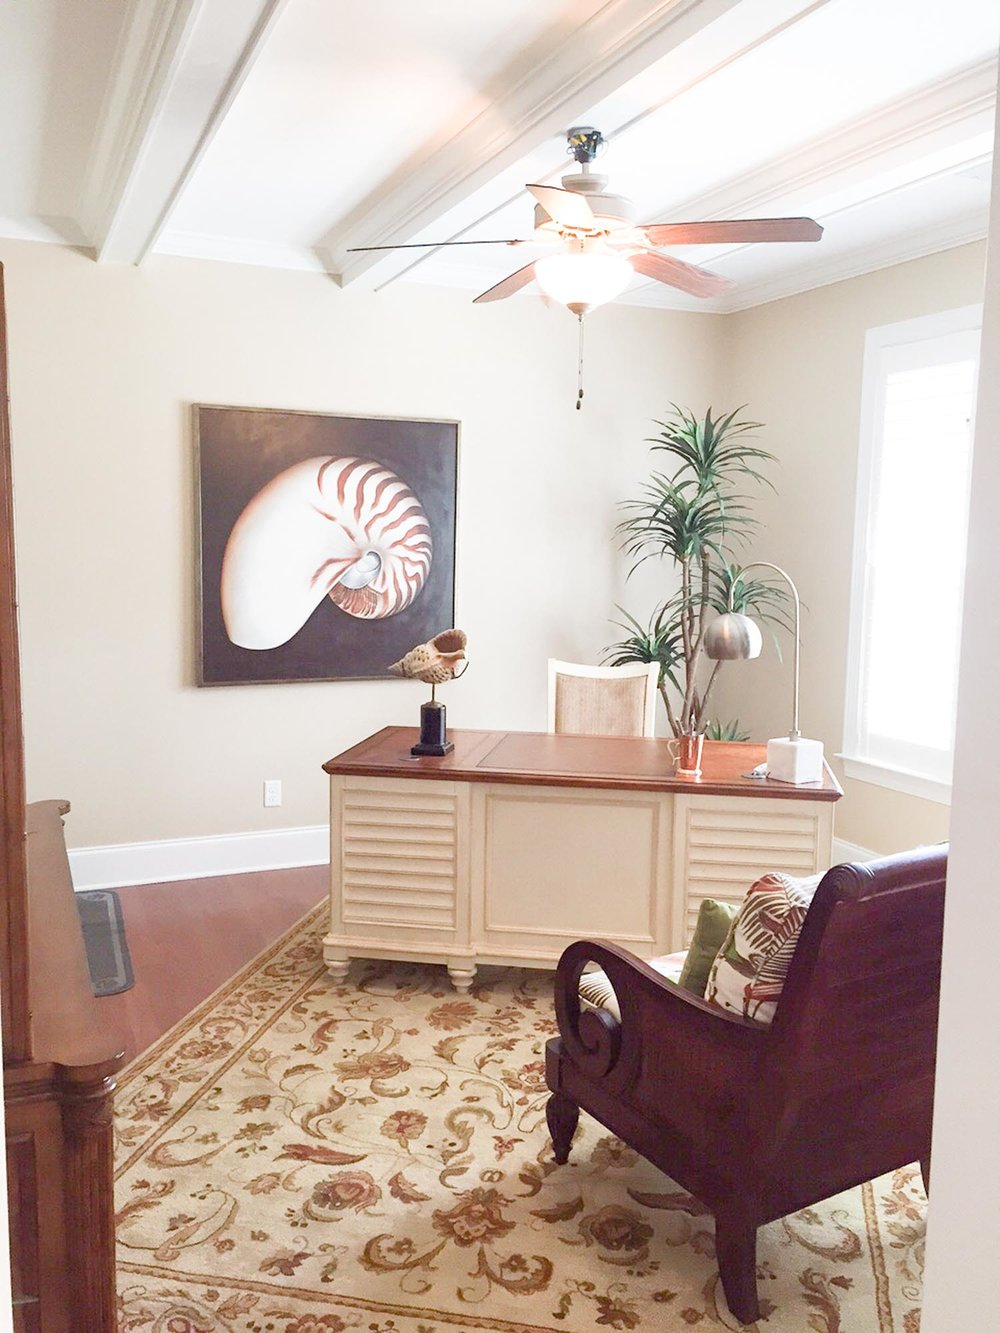 Office space with shell art and standing palm tree plant in corner